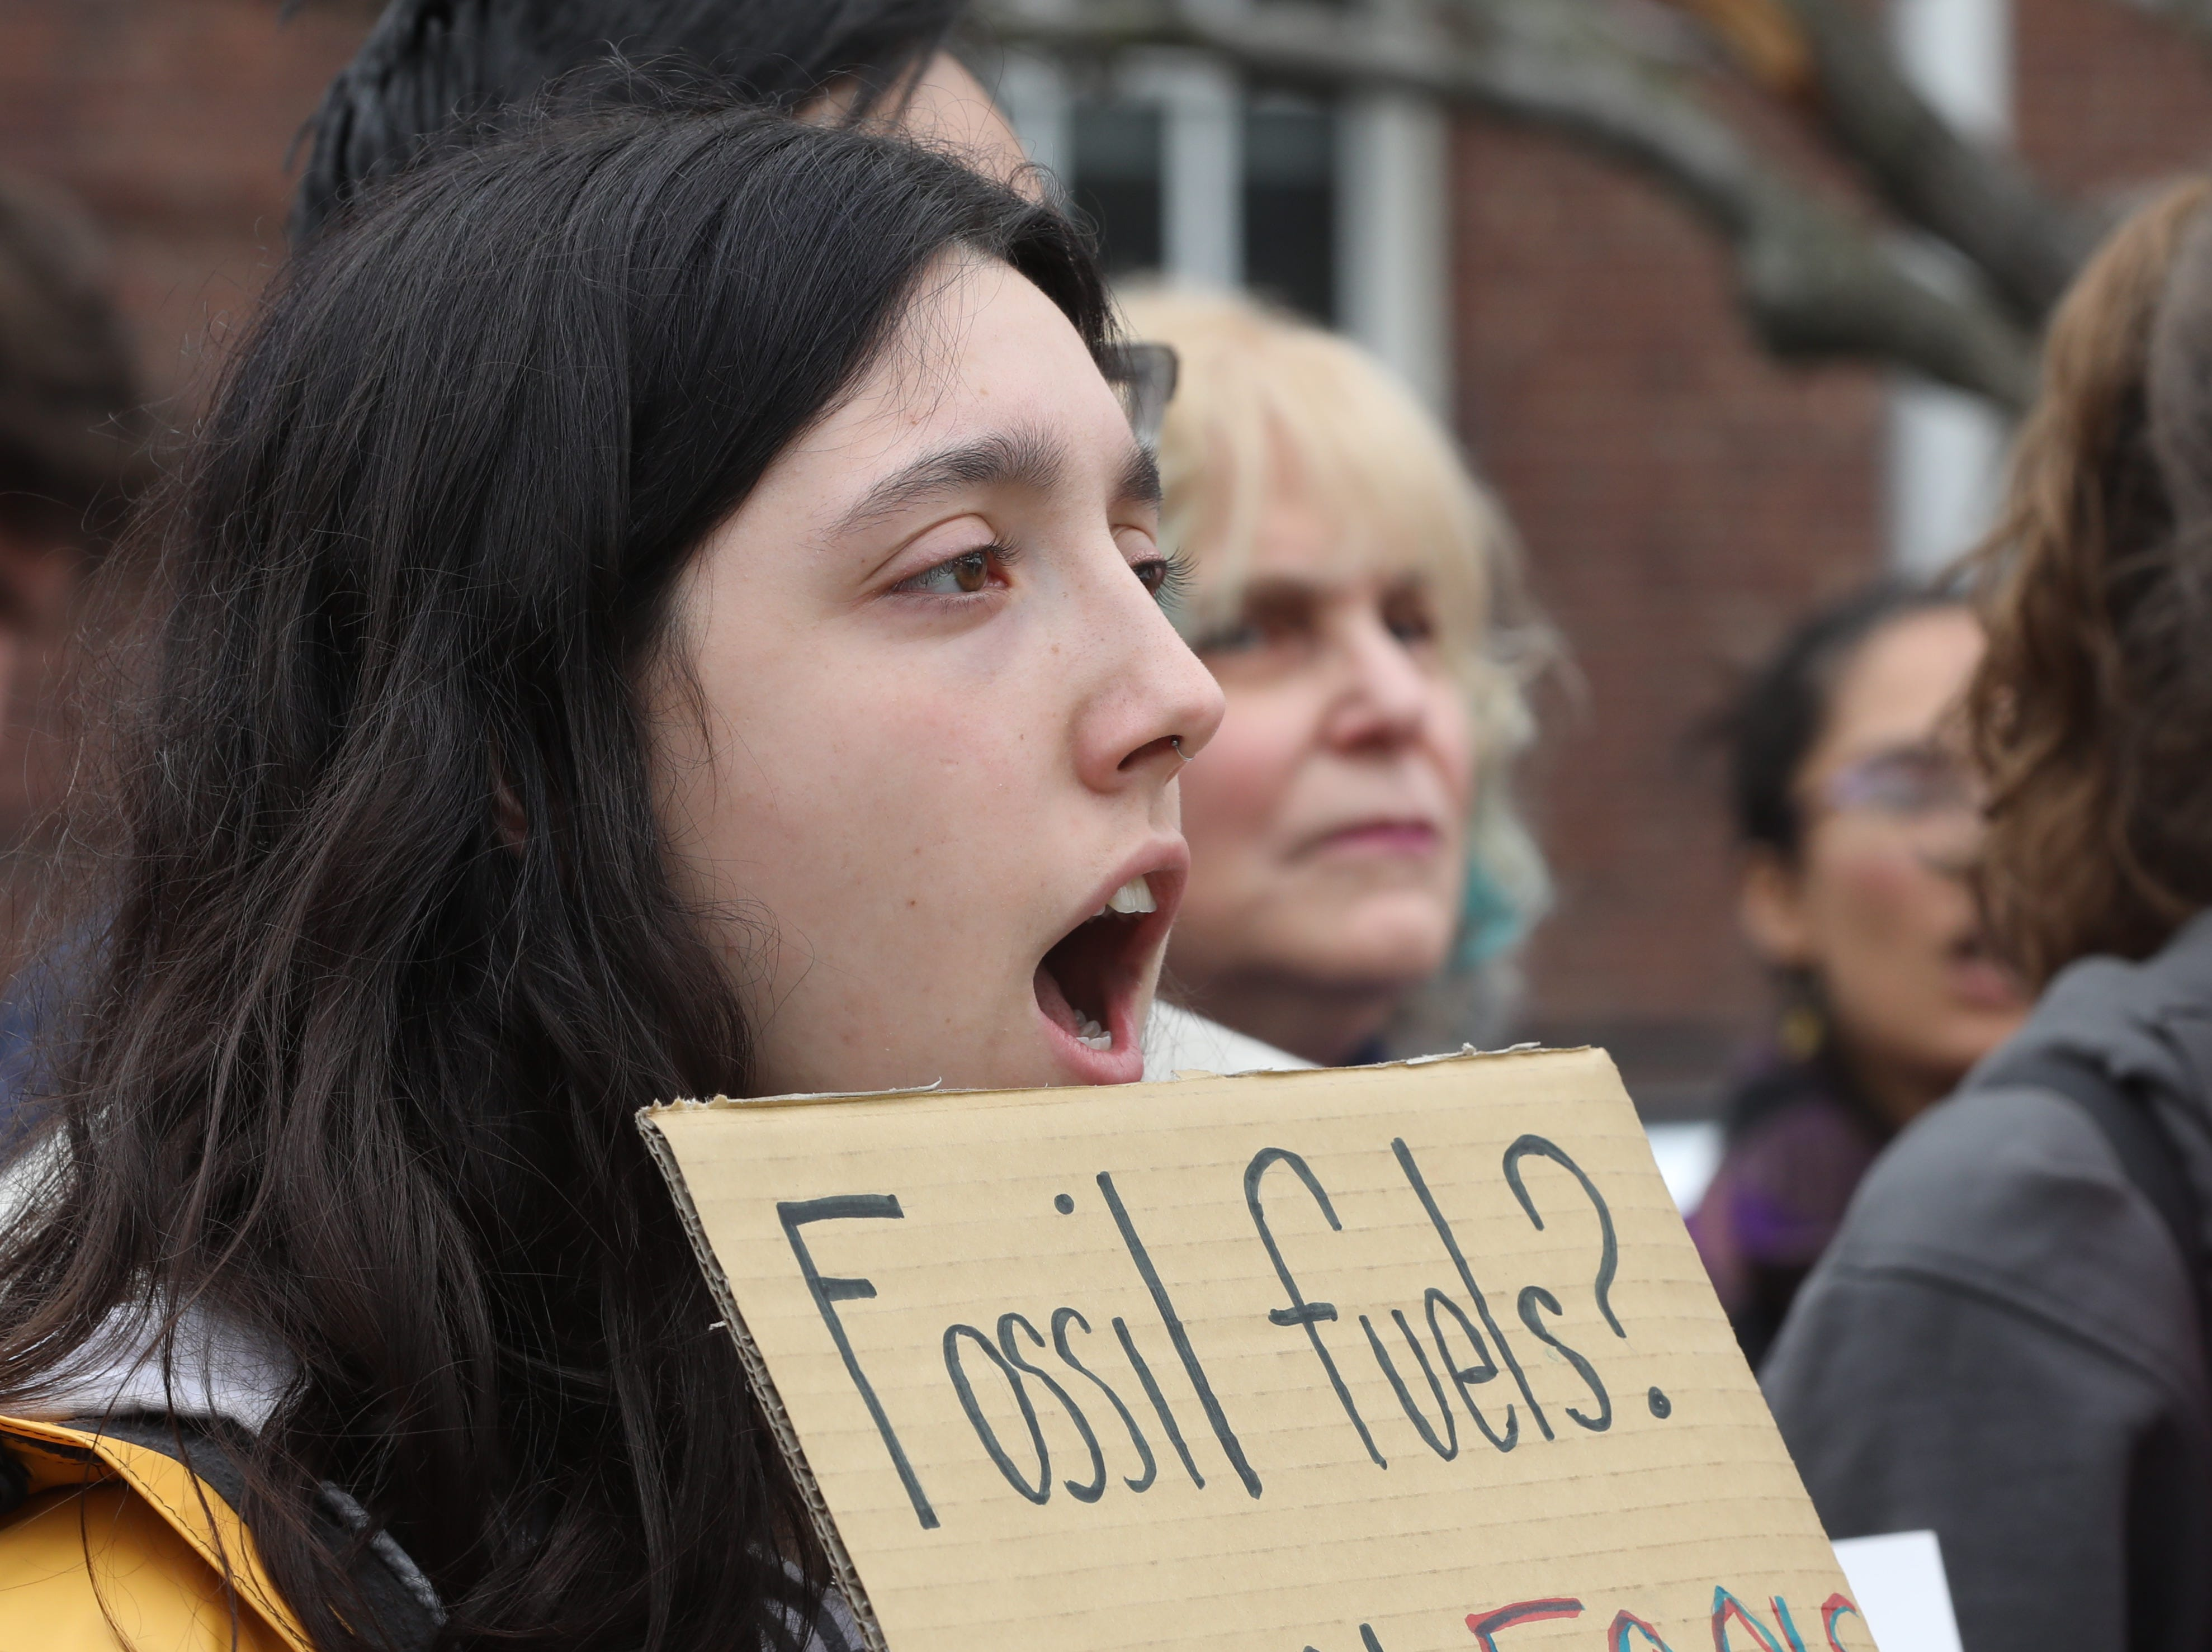 Christine Berlinger, 18 of Nyack High School attends a climate strike in Nyack March 15, 2019. About 100Êstudents inÊRockland County joined high school and college students around the world in walking out of school to protest global climate change and demand more aggressive policies to protect the environment.